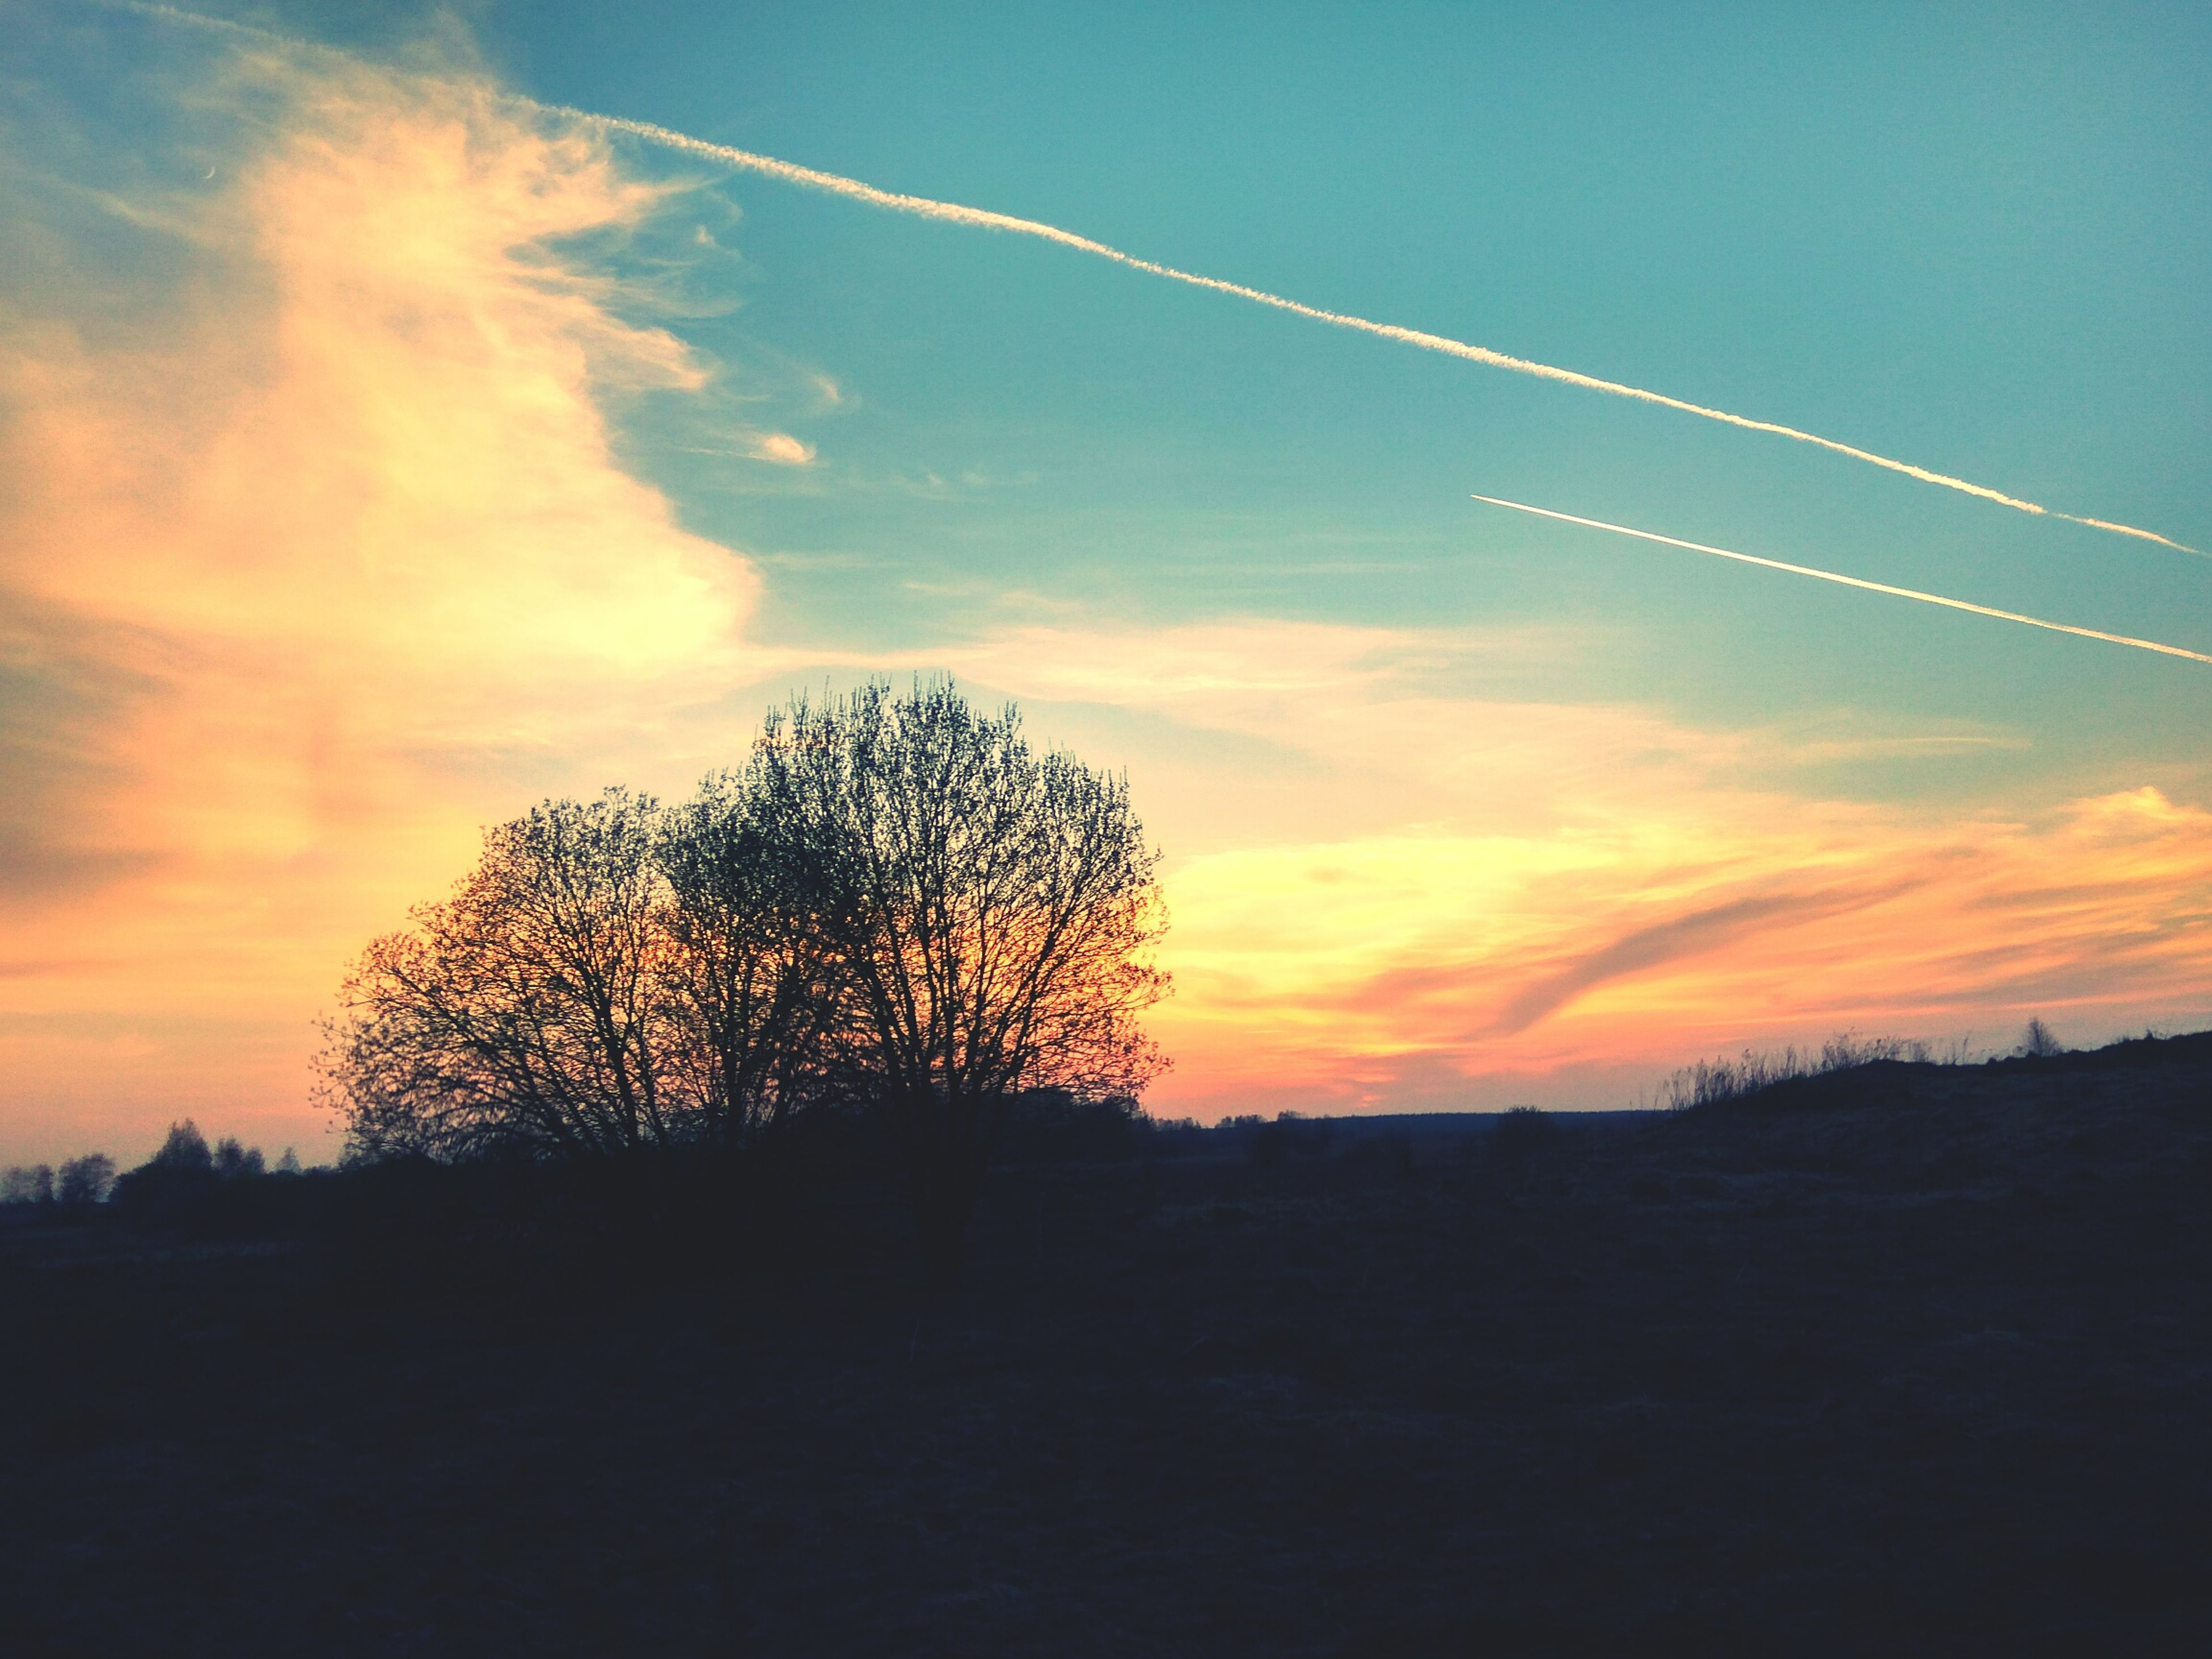 sunset, silhouette, beauty in nature, sky, nature, vapor trail, scenics, landscape, tree, tranquility, tranquil scene, no people, bare tree, outdoors, contrail, day